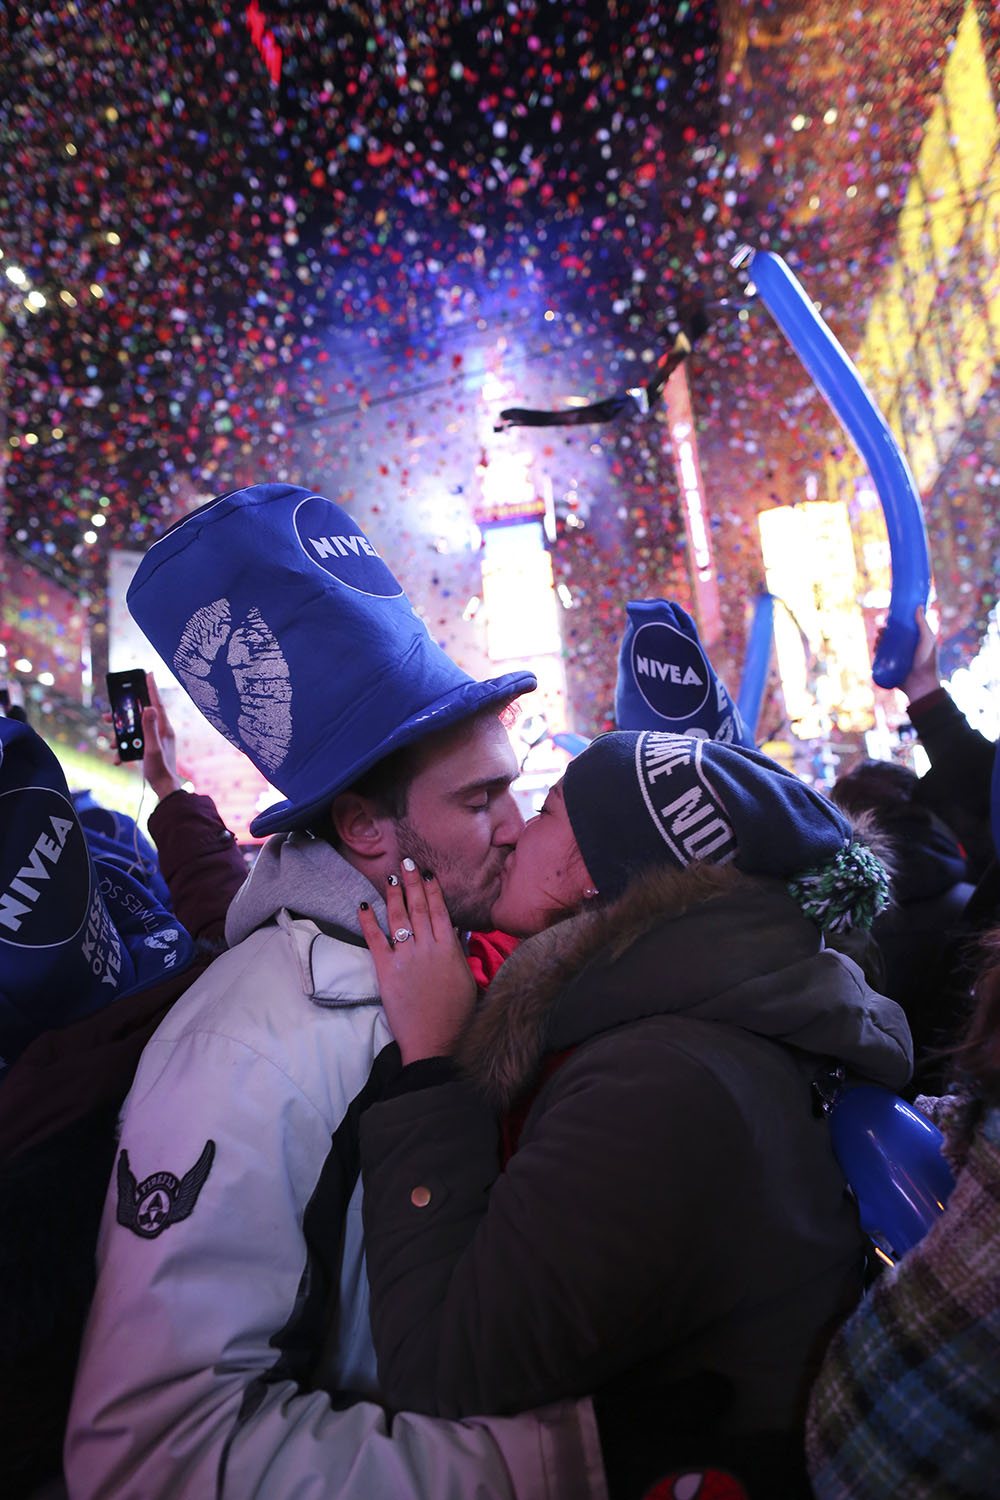 December 31, 2013. New York City, NY. Revelers kiss at midnight in Times Square. Credit: Elizabeth D. Herman for The New York Times